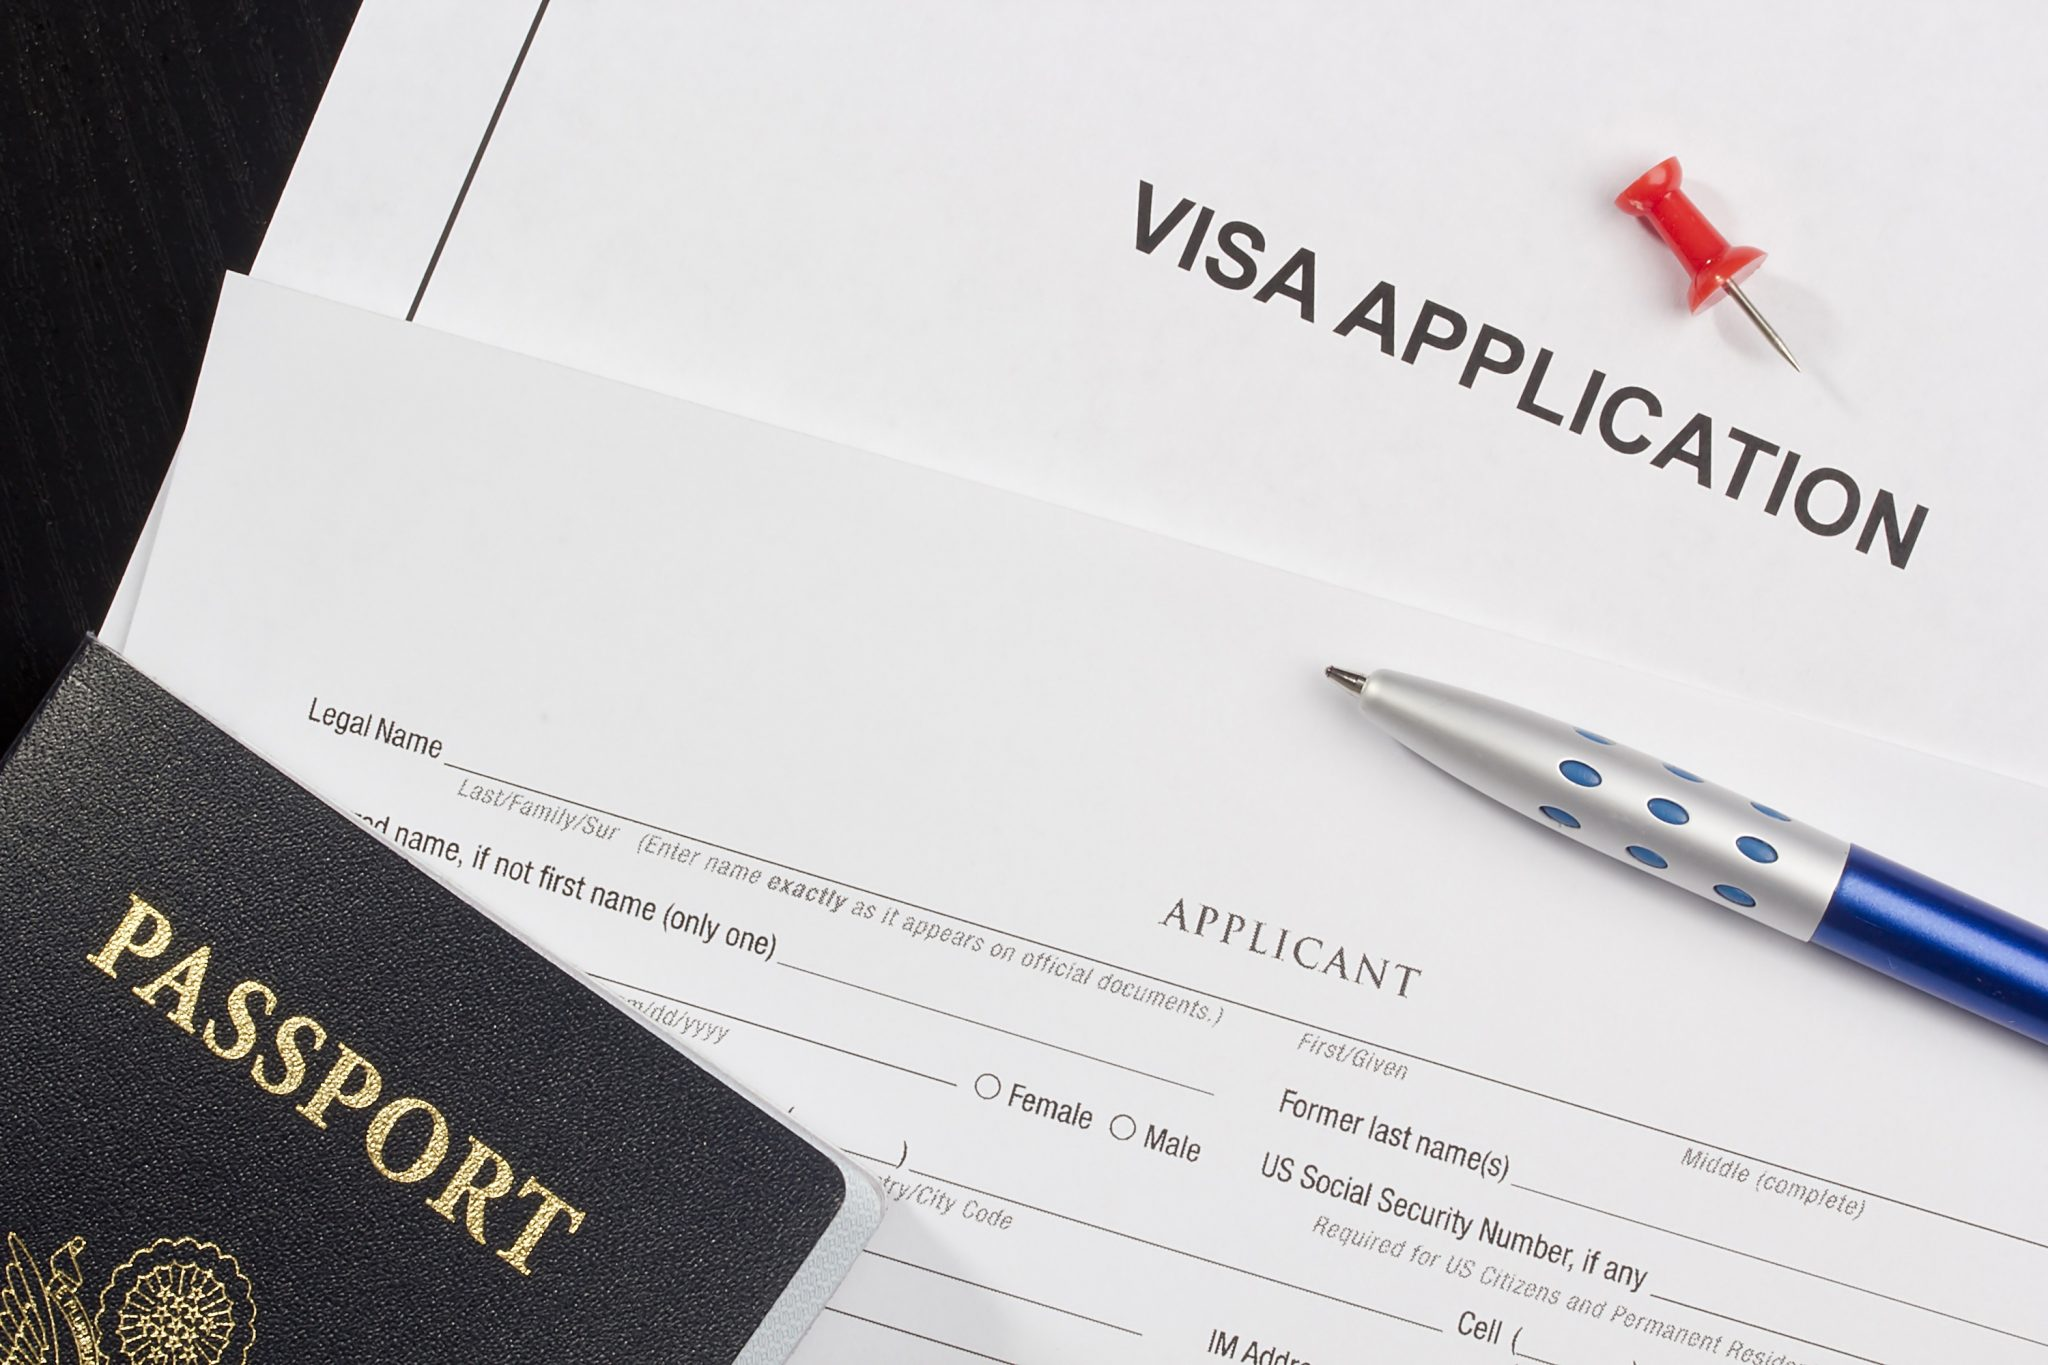 What are questions which might be asked while getting a student visa?